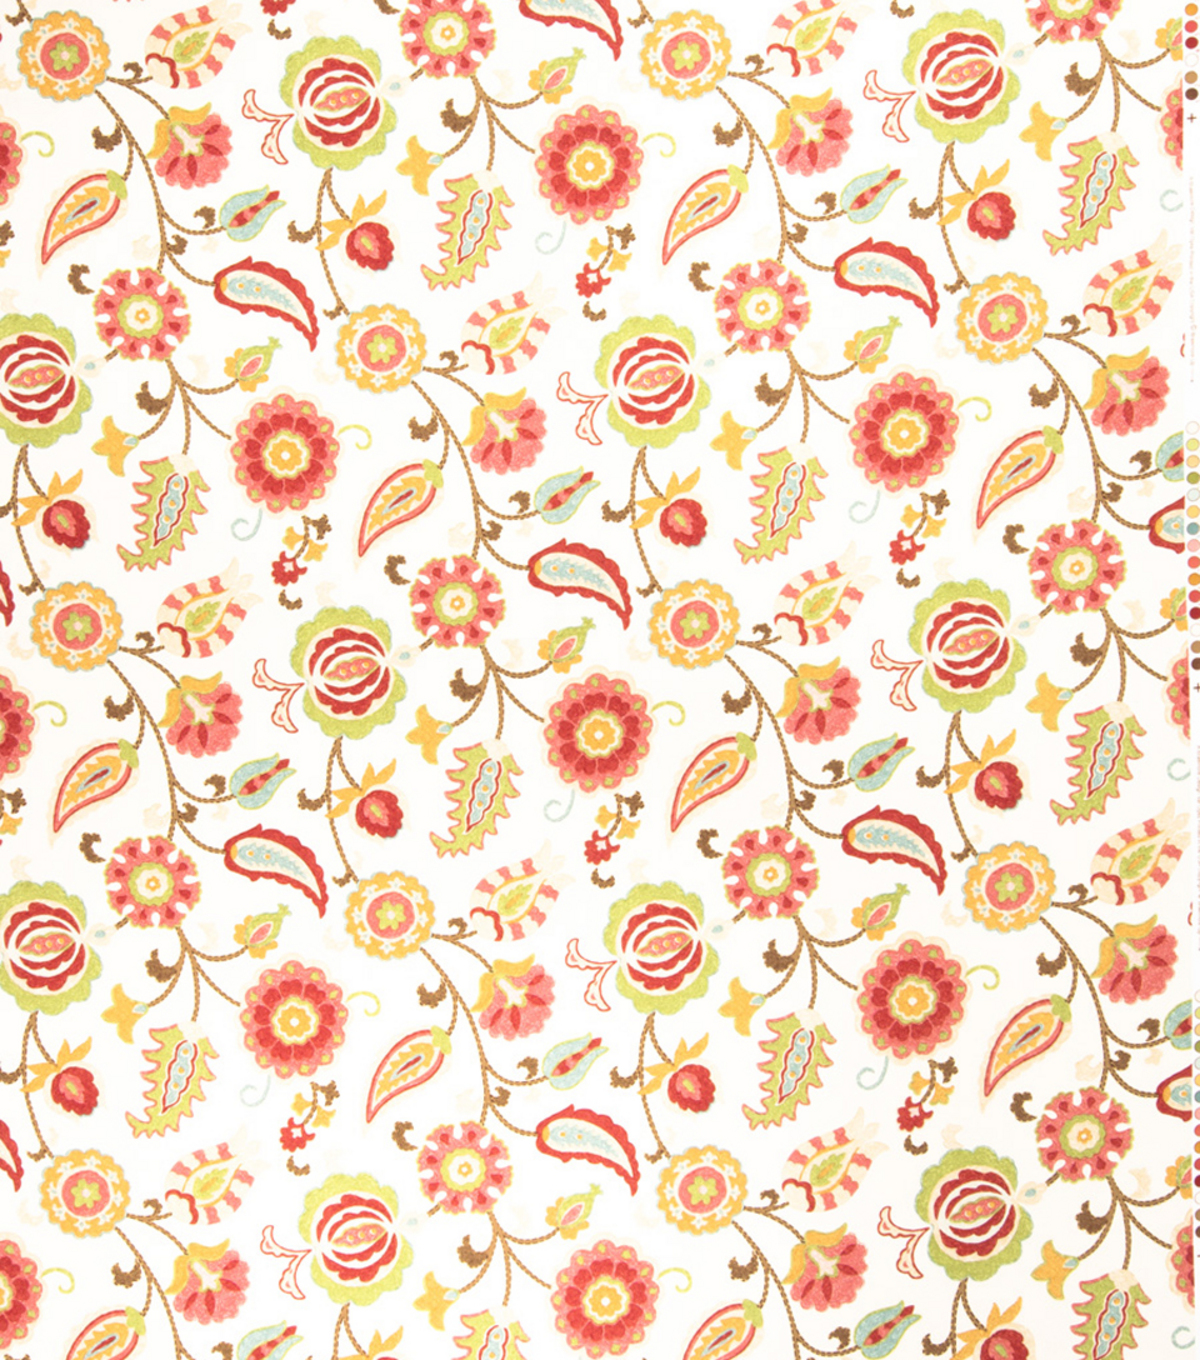 Home Decor 8\u0022x8\u0022 Fabric Swatch-Upholstery Fabric Eaton Square Usher Punch